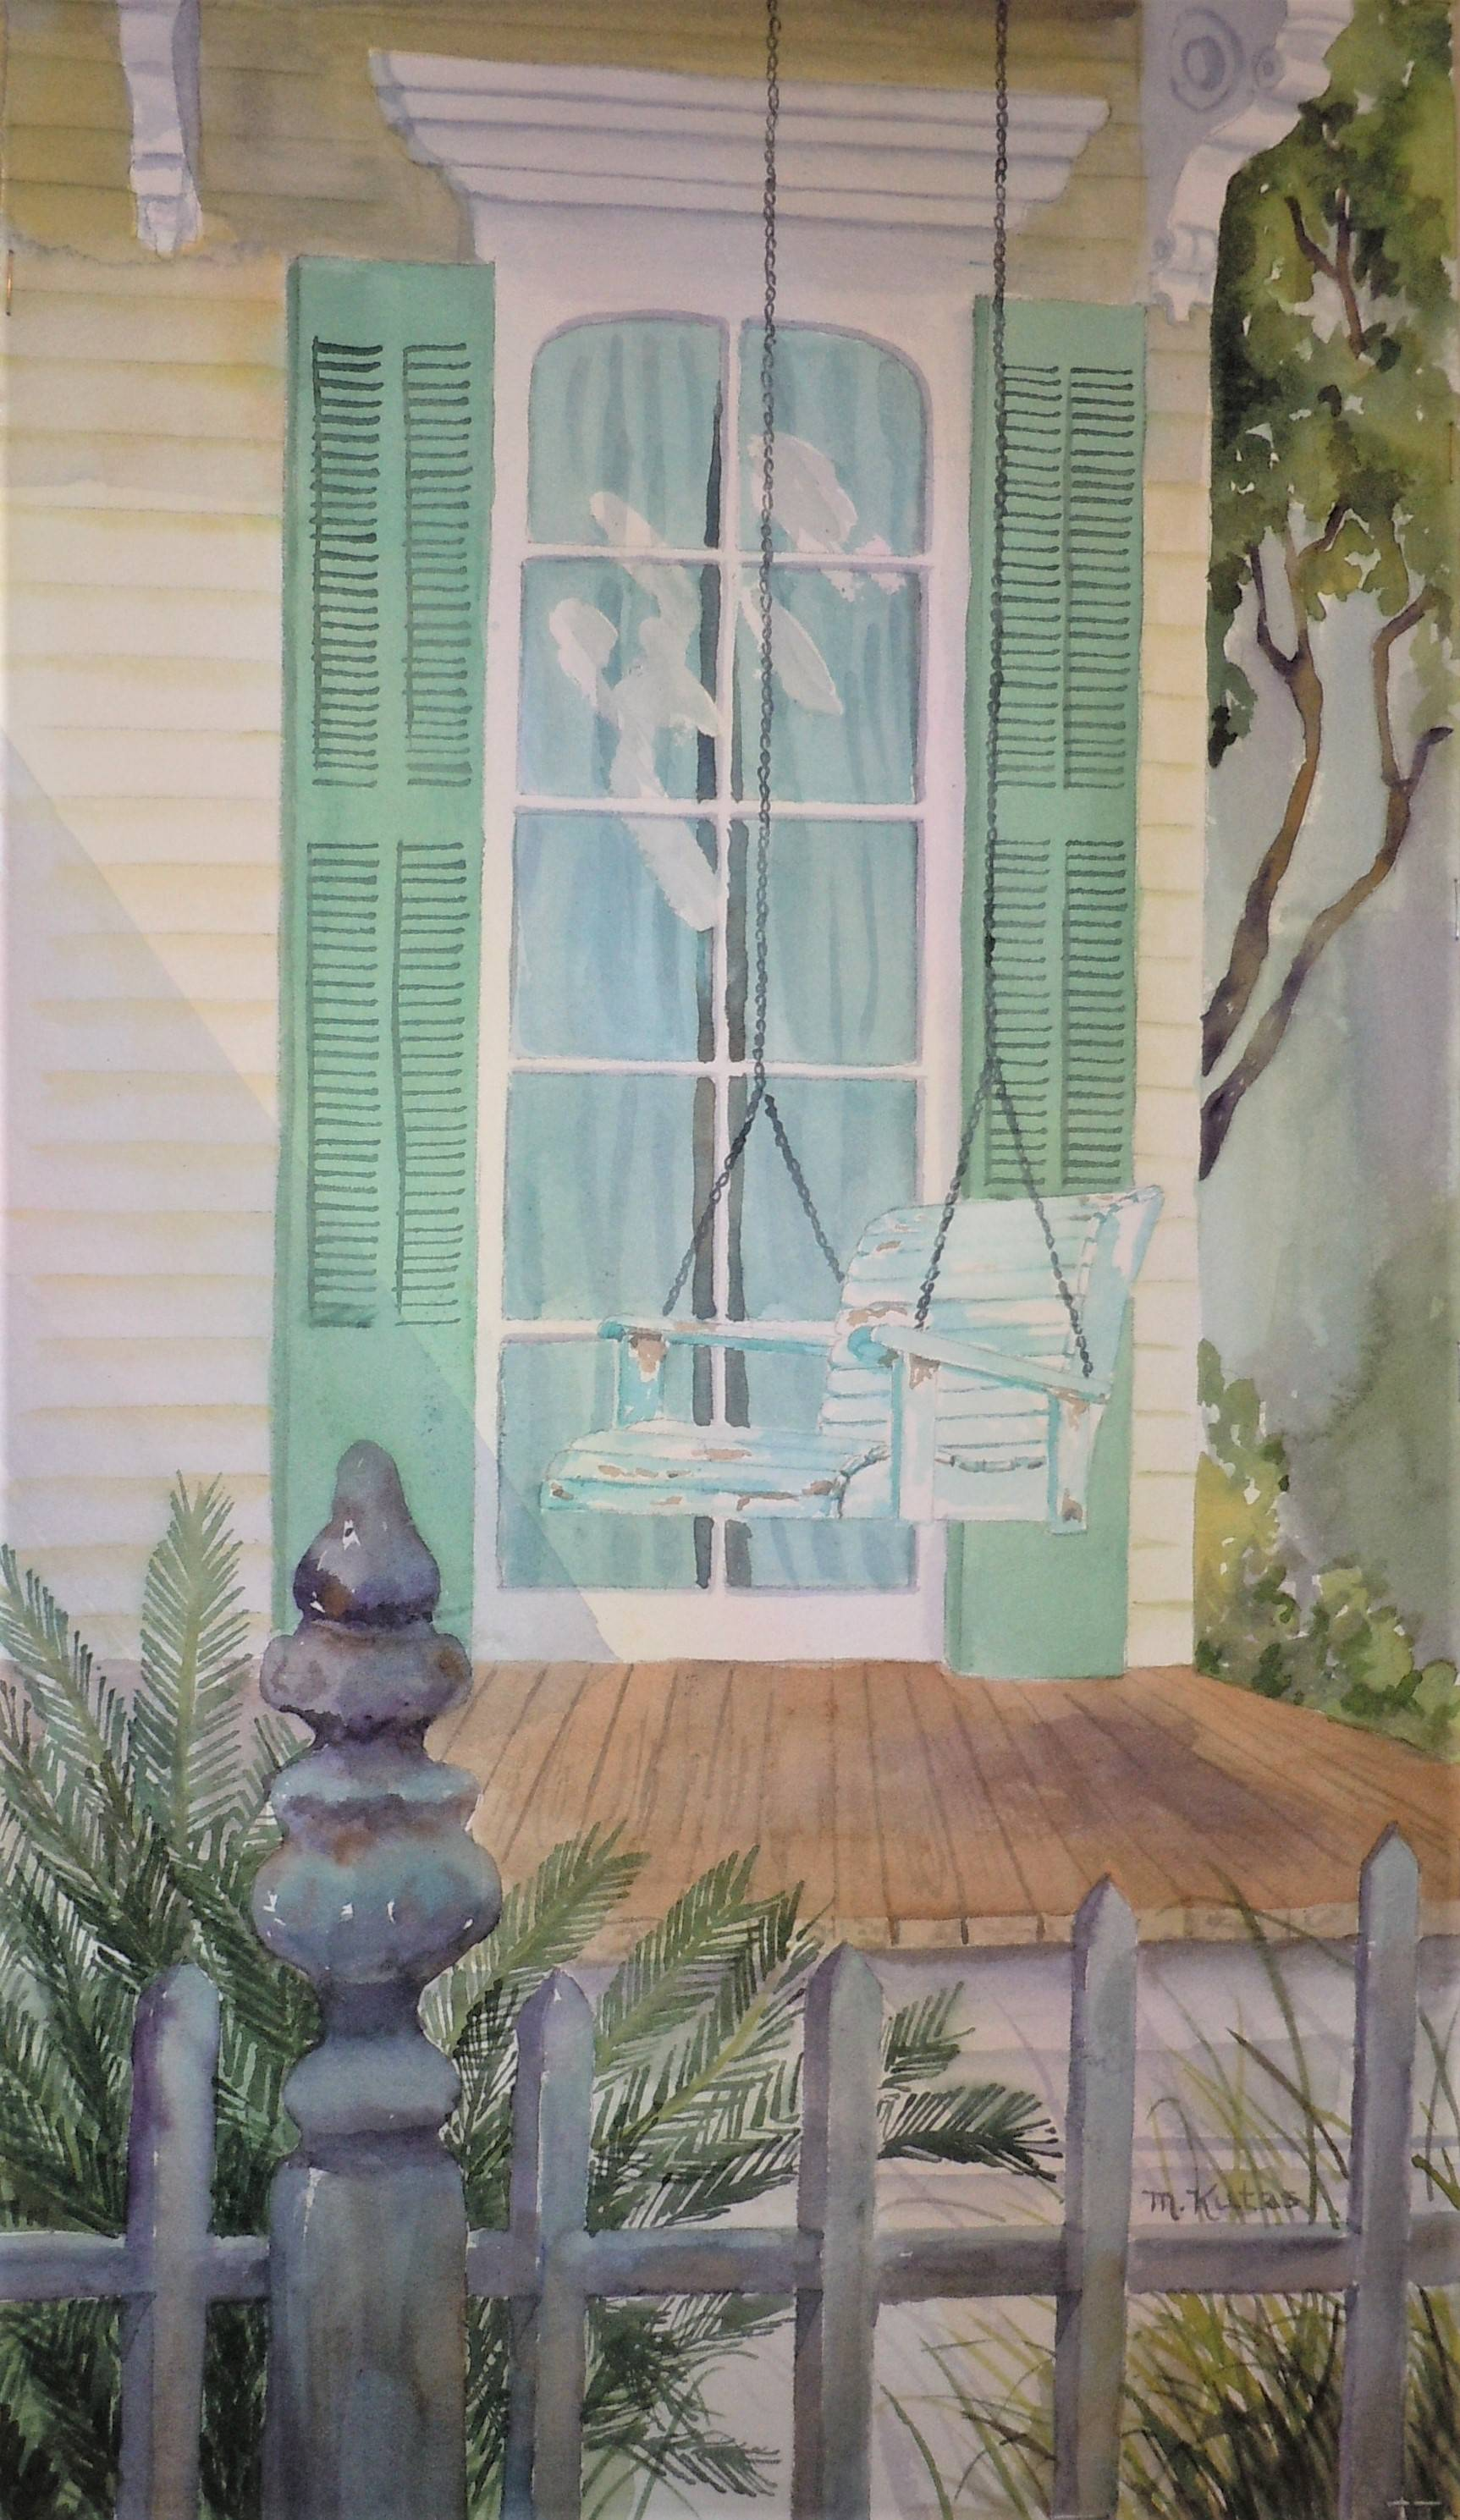 Porch Swing, NOLA